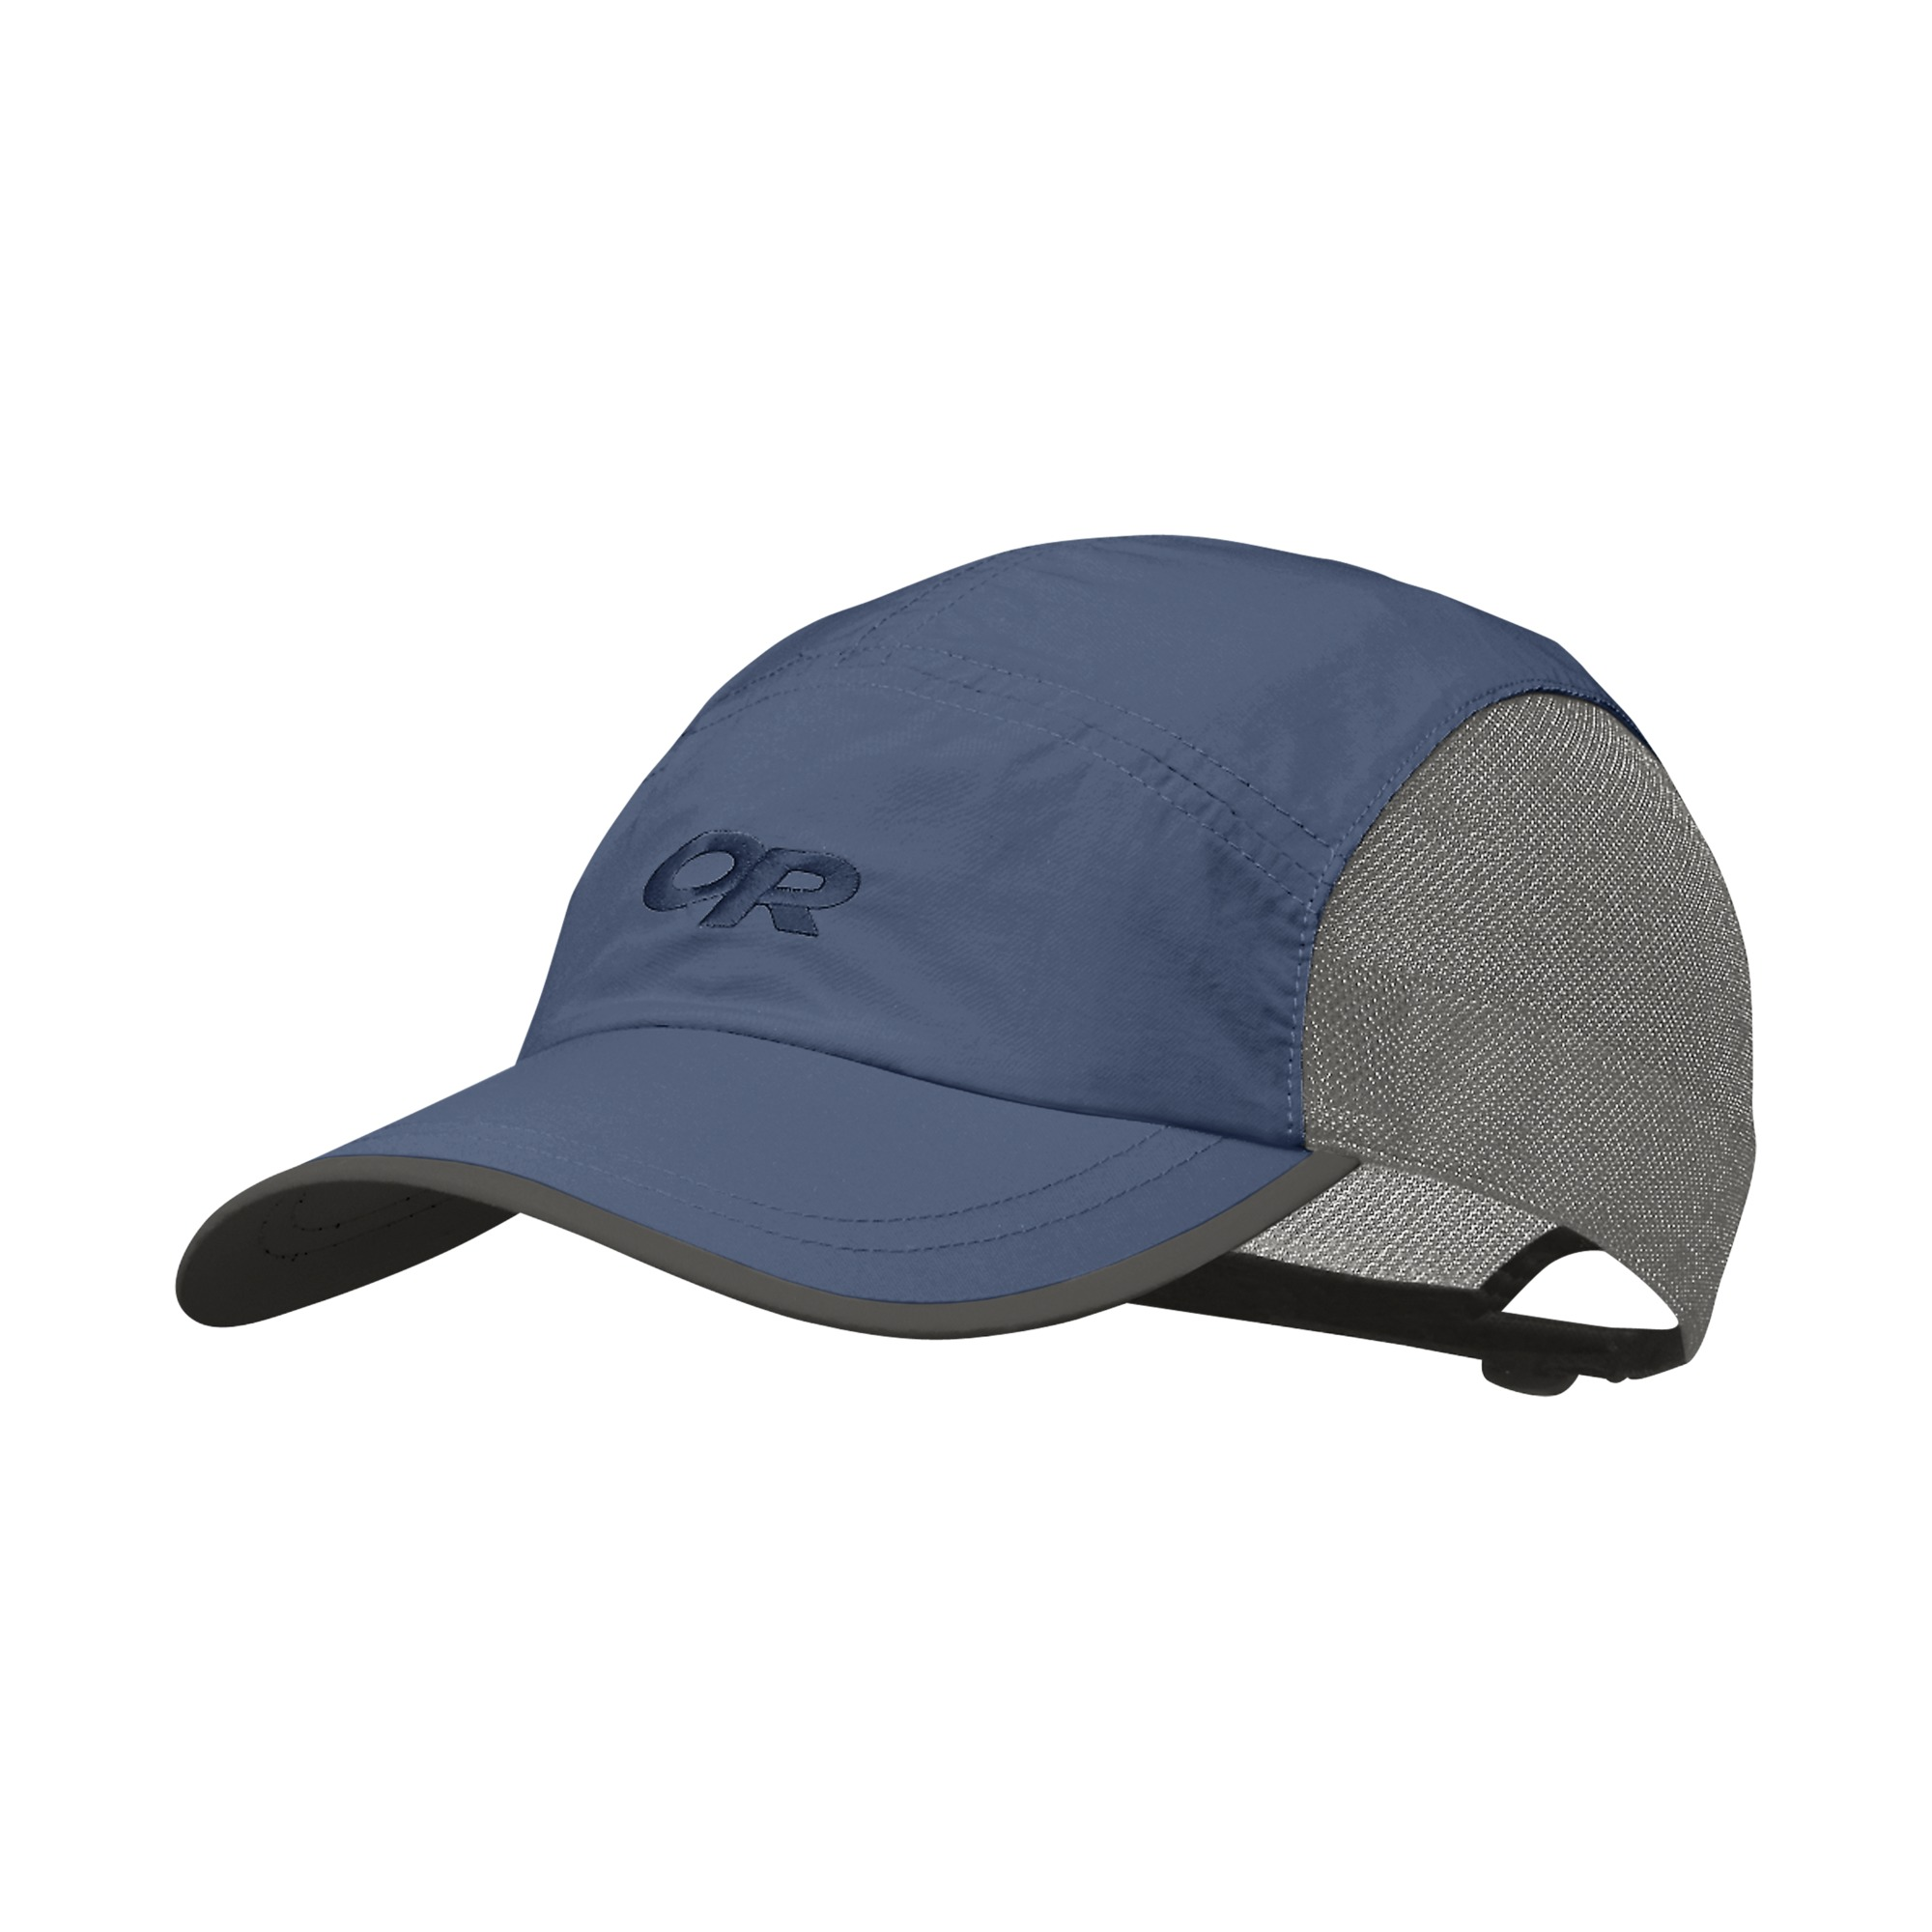 7897705772a97 Swift Cap - dusk dark grey